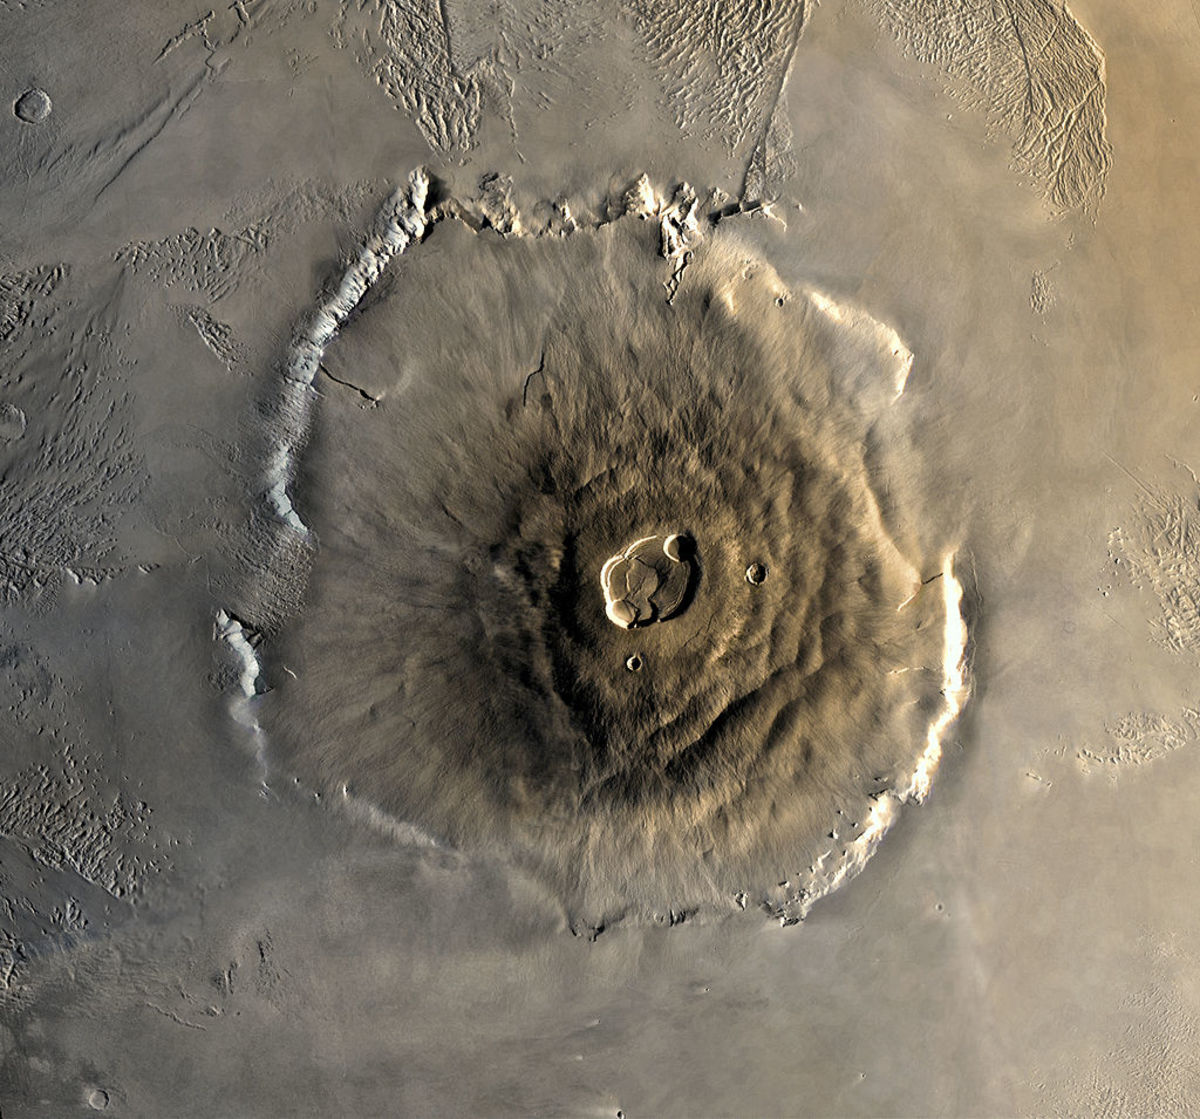 Olympus Mons: over twice the height of Mount Everest